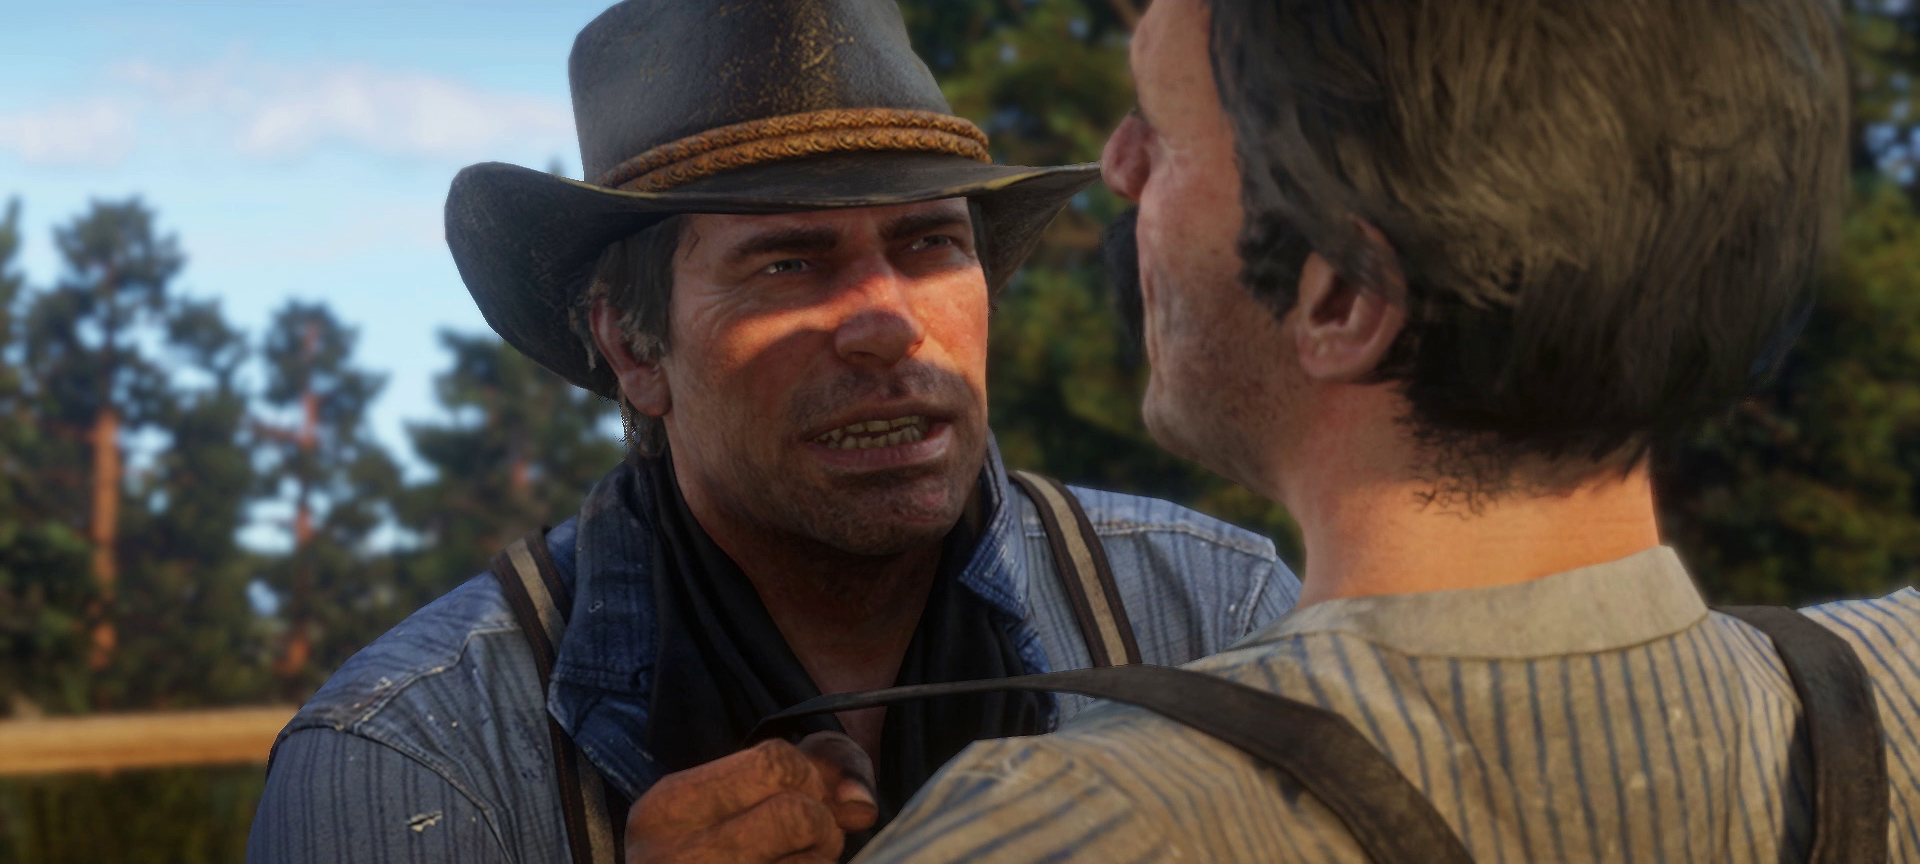 red_dead_redemption_2_screencap_08_shake